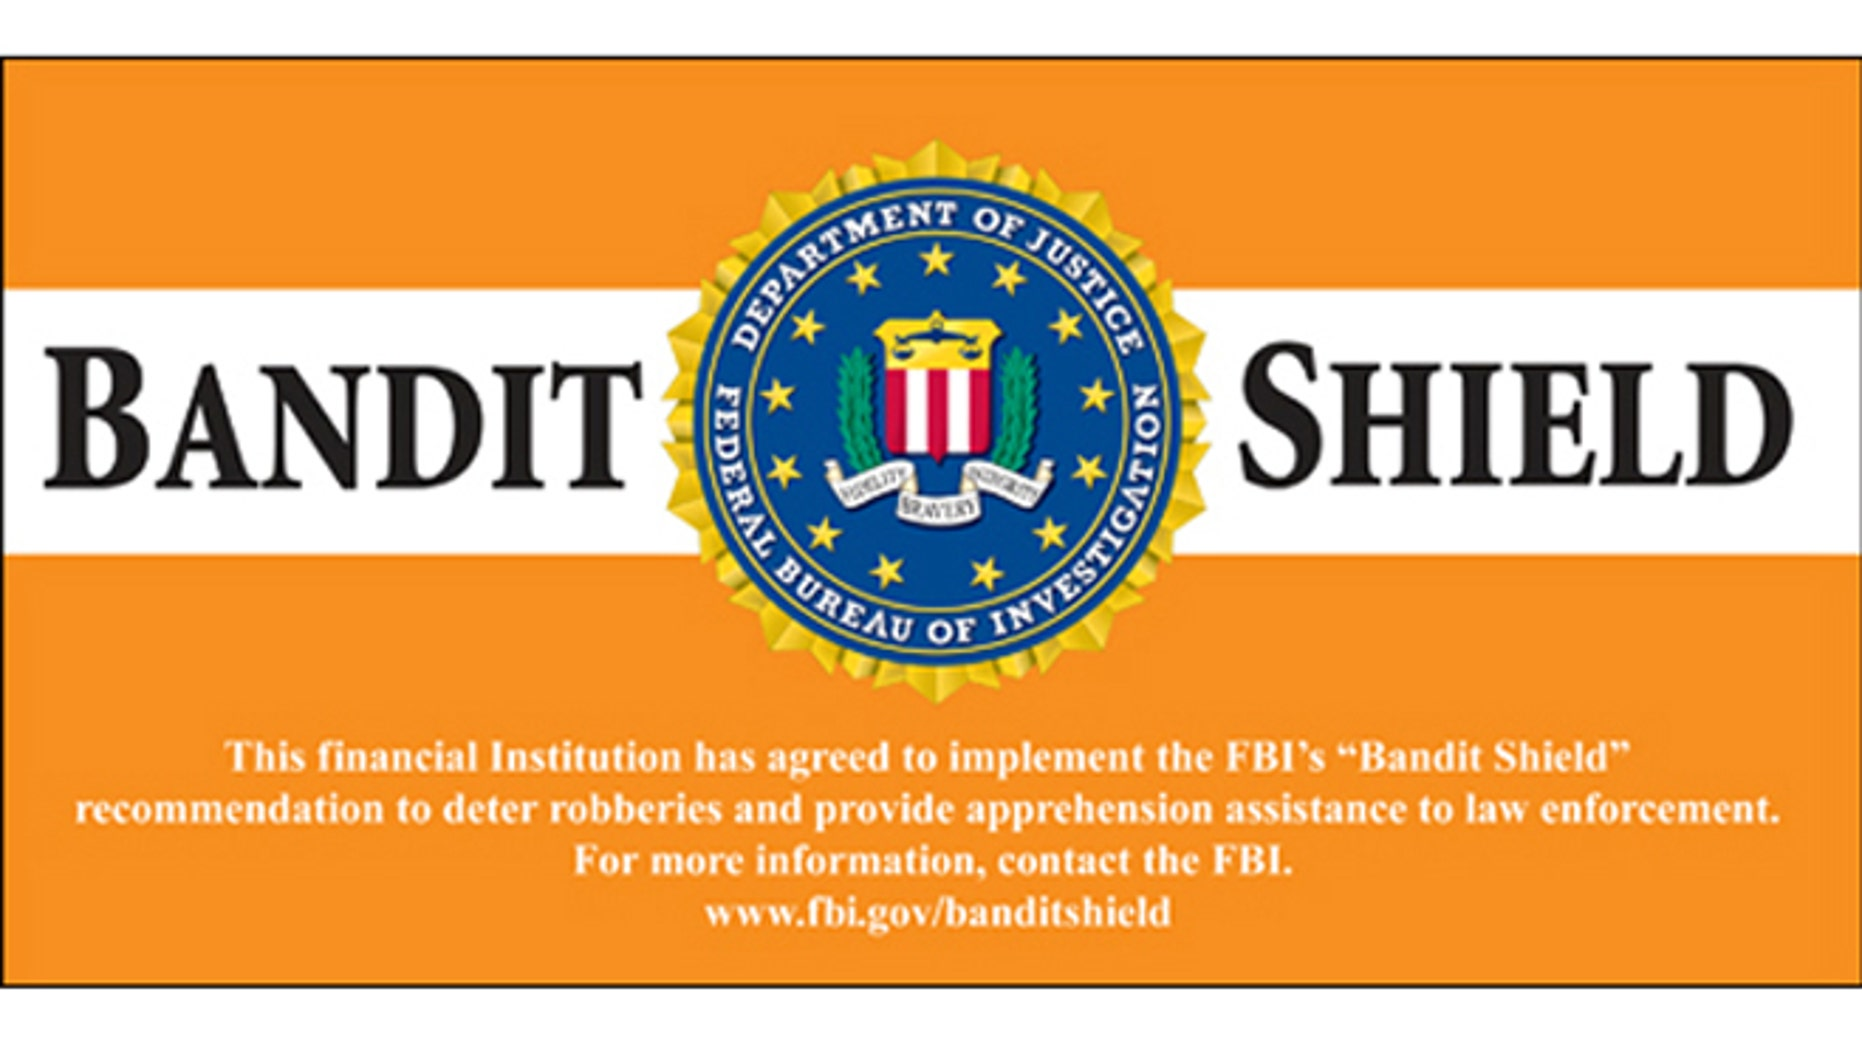 Banks that comply with the Bandit Shield Initiative will be rewarded with these Bandit Shield decals to be affixed to their doors by the FBI.